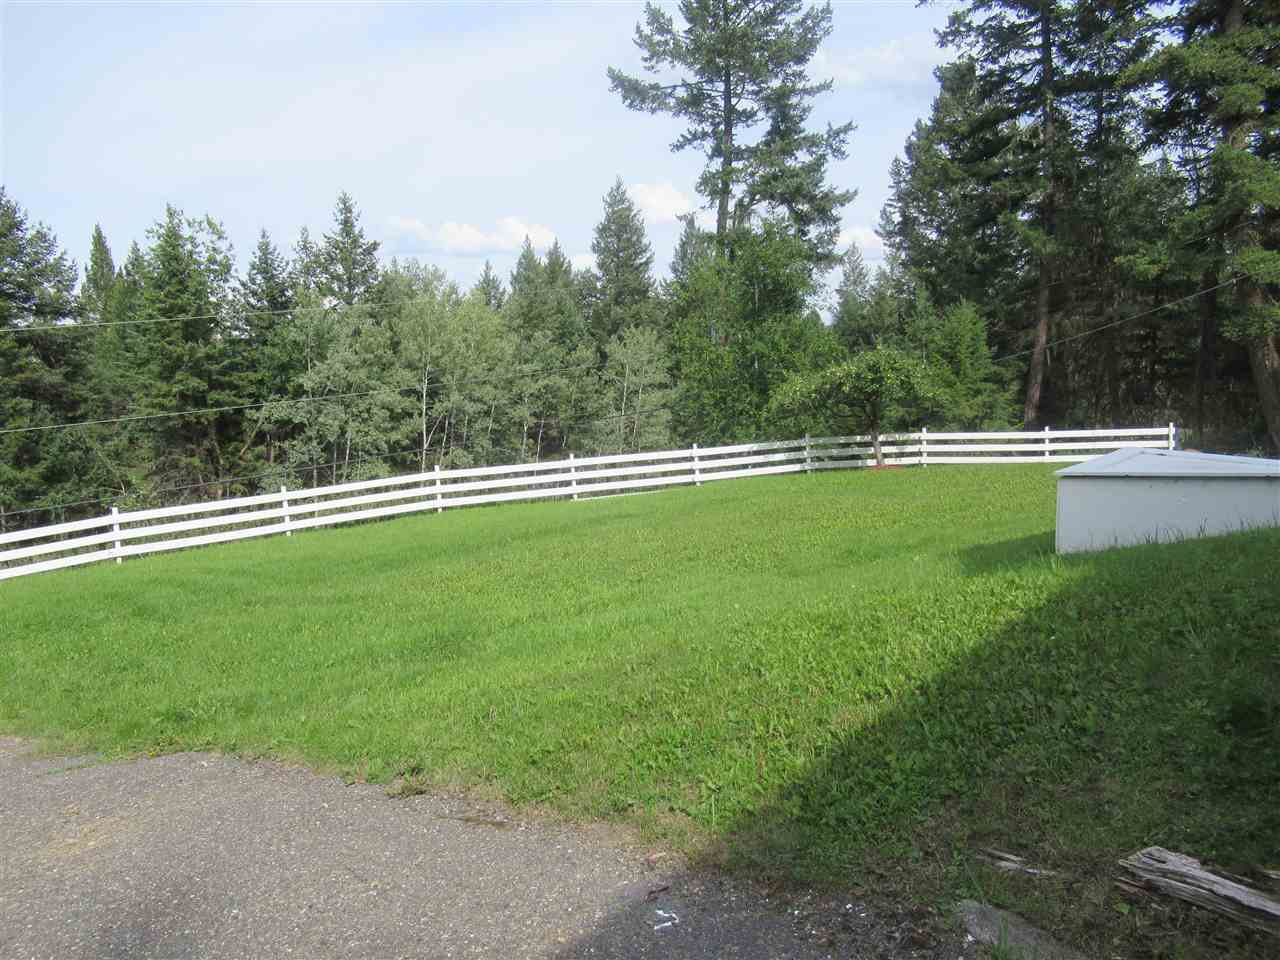 Photo 4: Photos: 607 ROBERTS Drive in Williams Lake: Esler/Dog Creek House for sale (Williams Lake (Zone 27))  : MLS®# R2391926